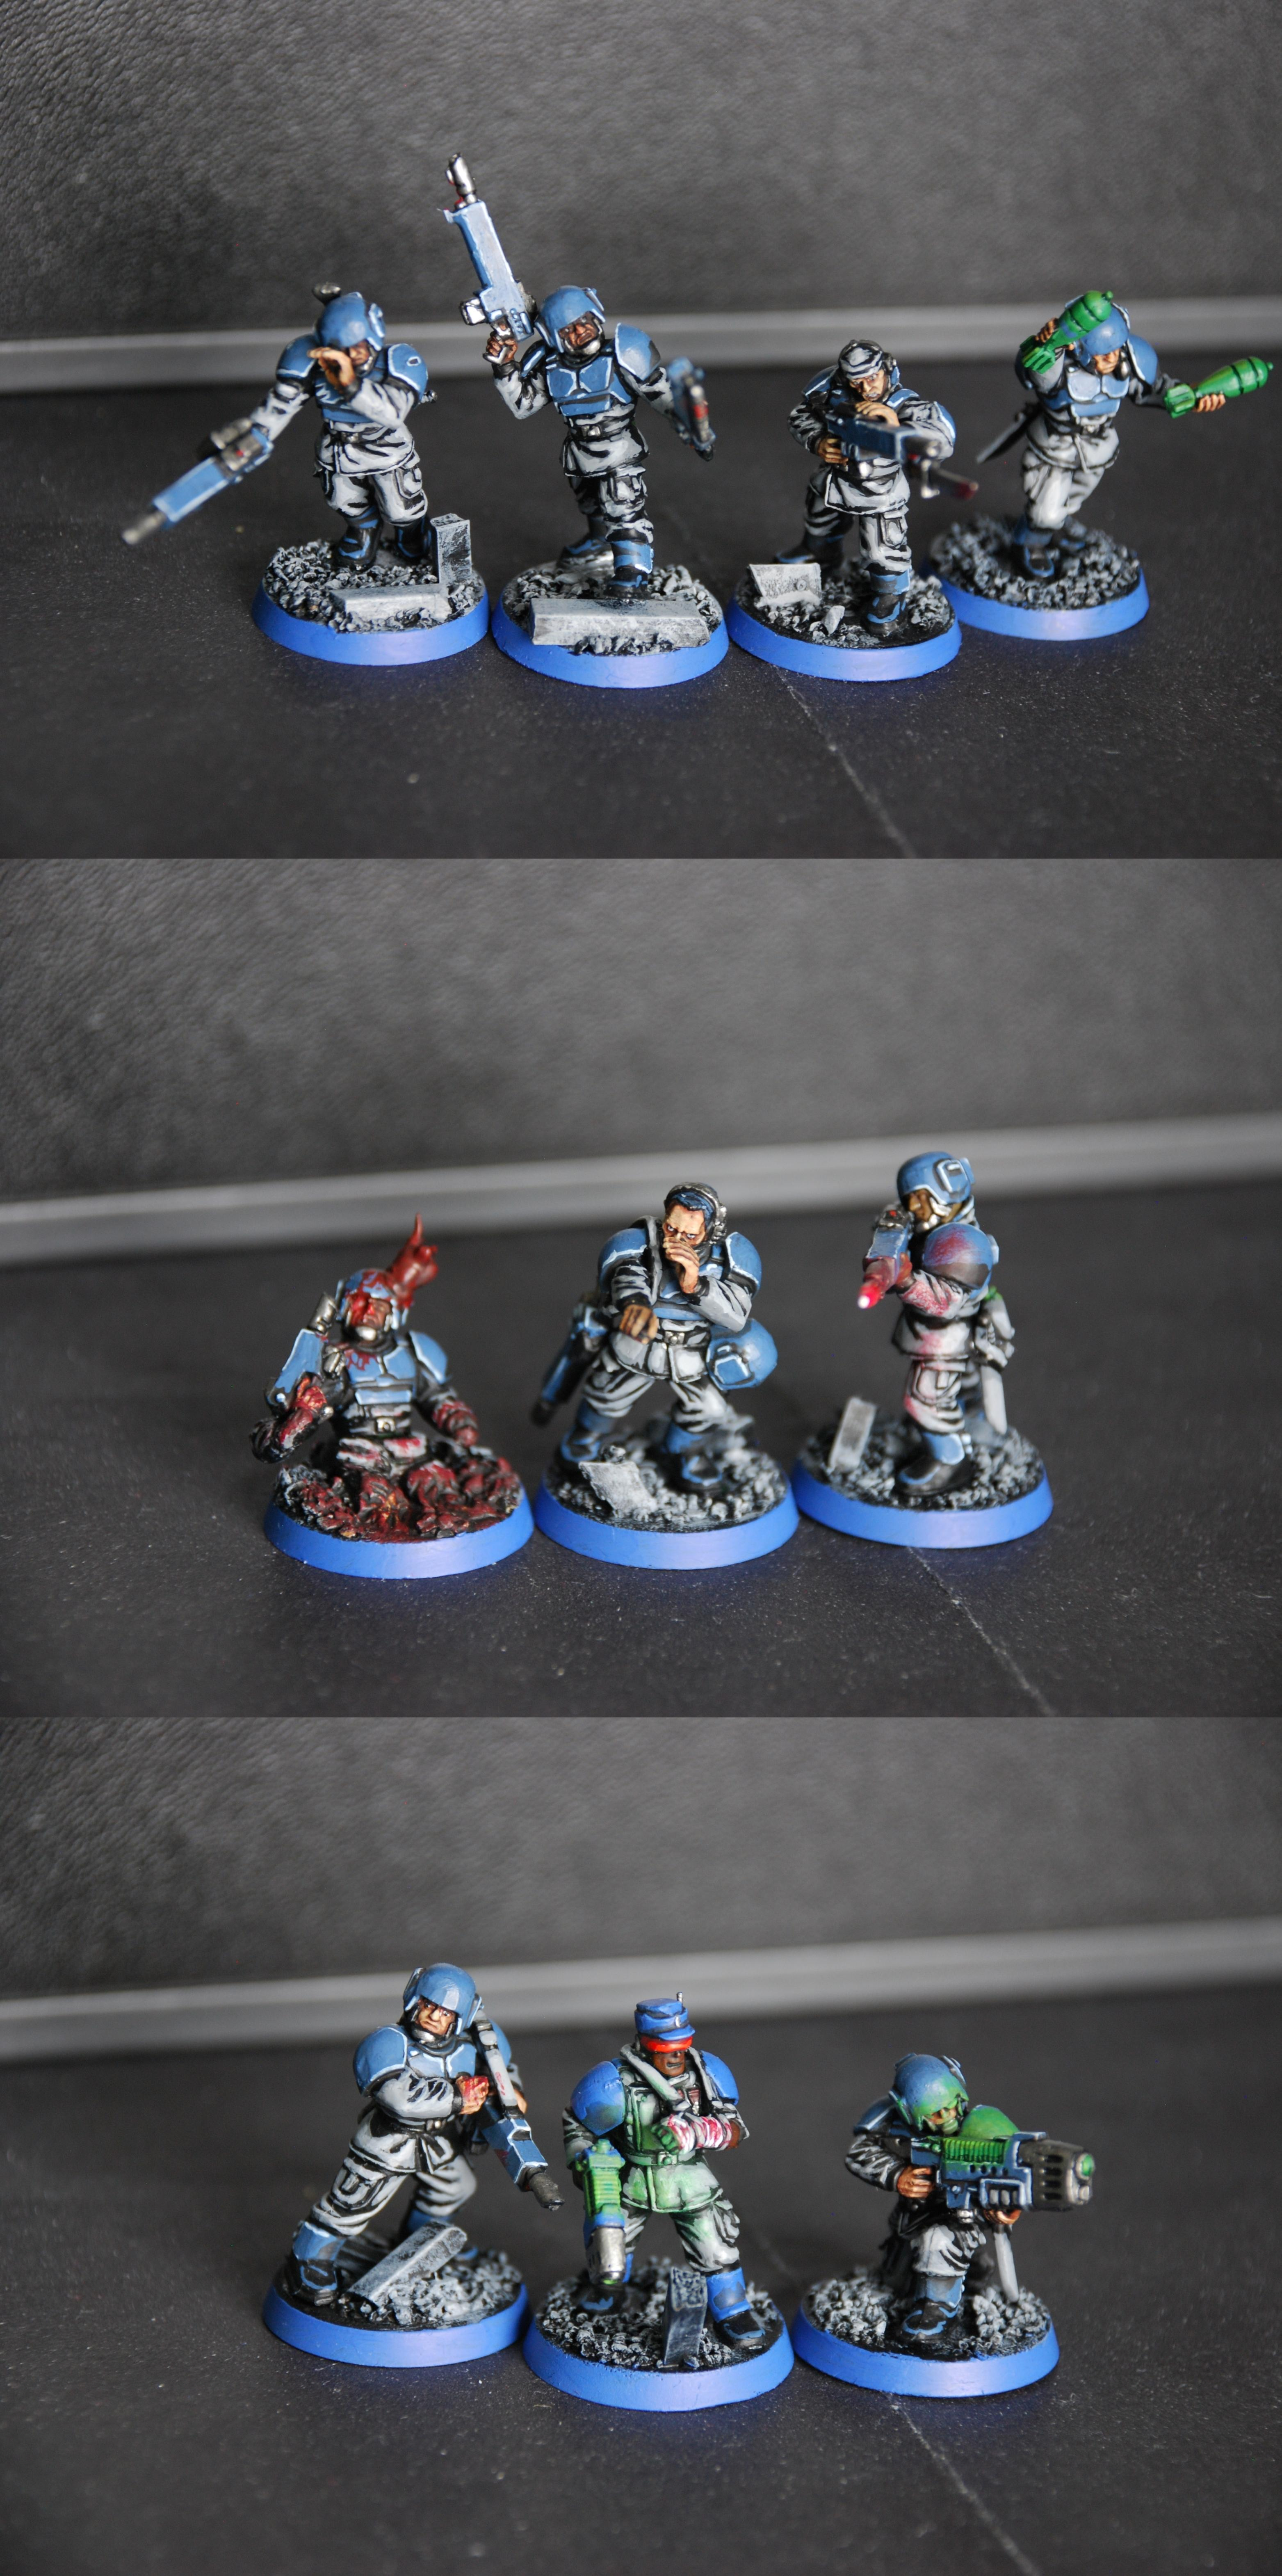 Guardsmen, Imperial Guard, Infantry, Infantry Squad, Object Source Lighting, Plasma, Troops, Warhammer 40,000, Wounded